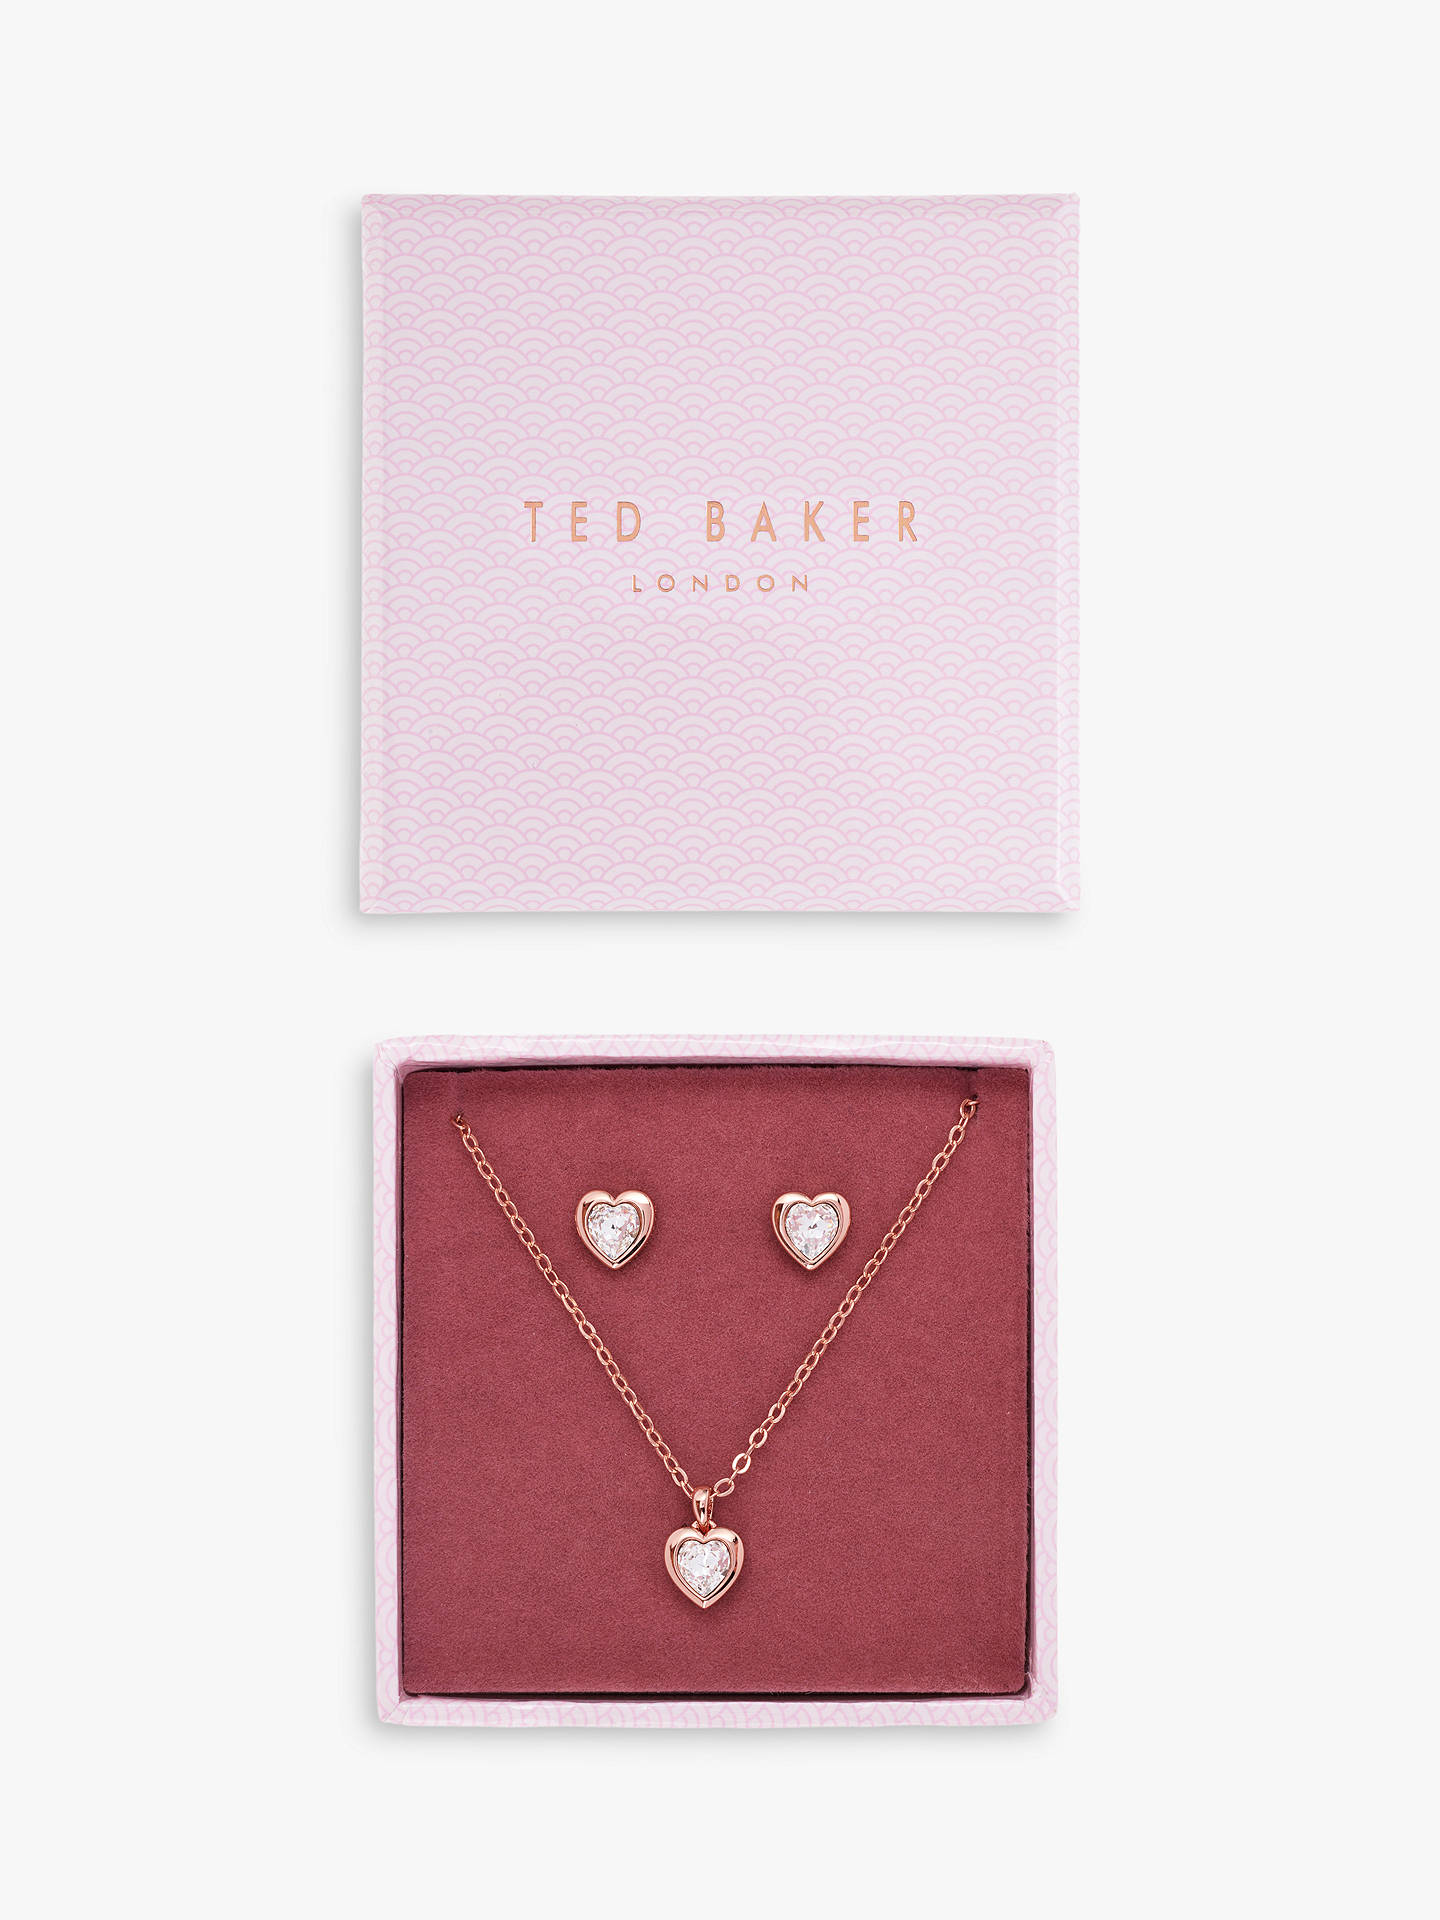 de75261193106 Ted Baker Swarovski Crystal Heart Pendant Necklace and Stud Earrings  Jewellery Gift Set, Rose Gold